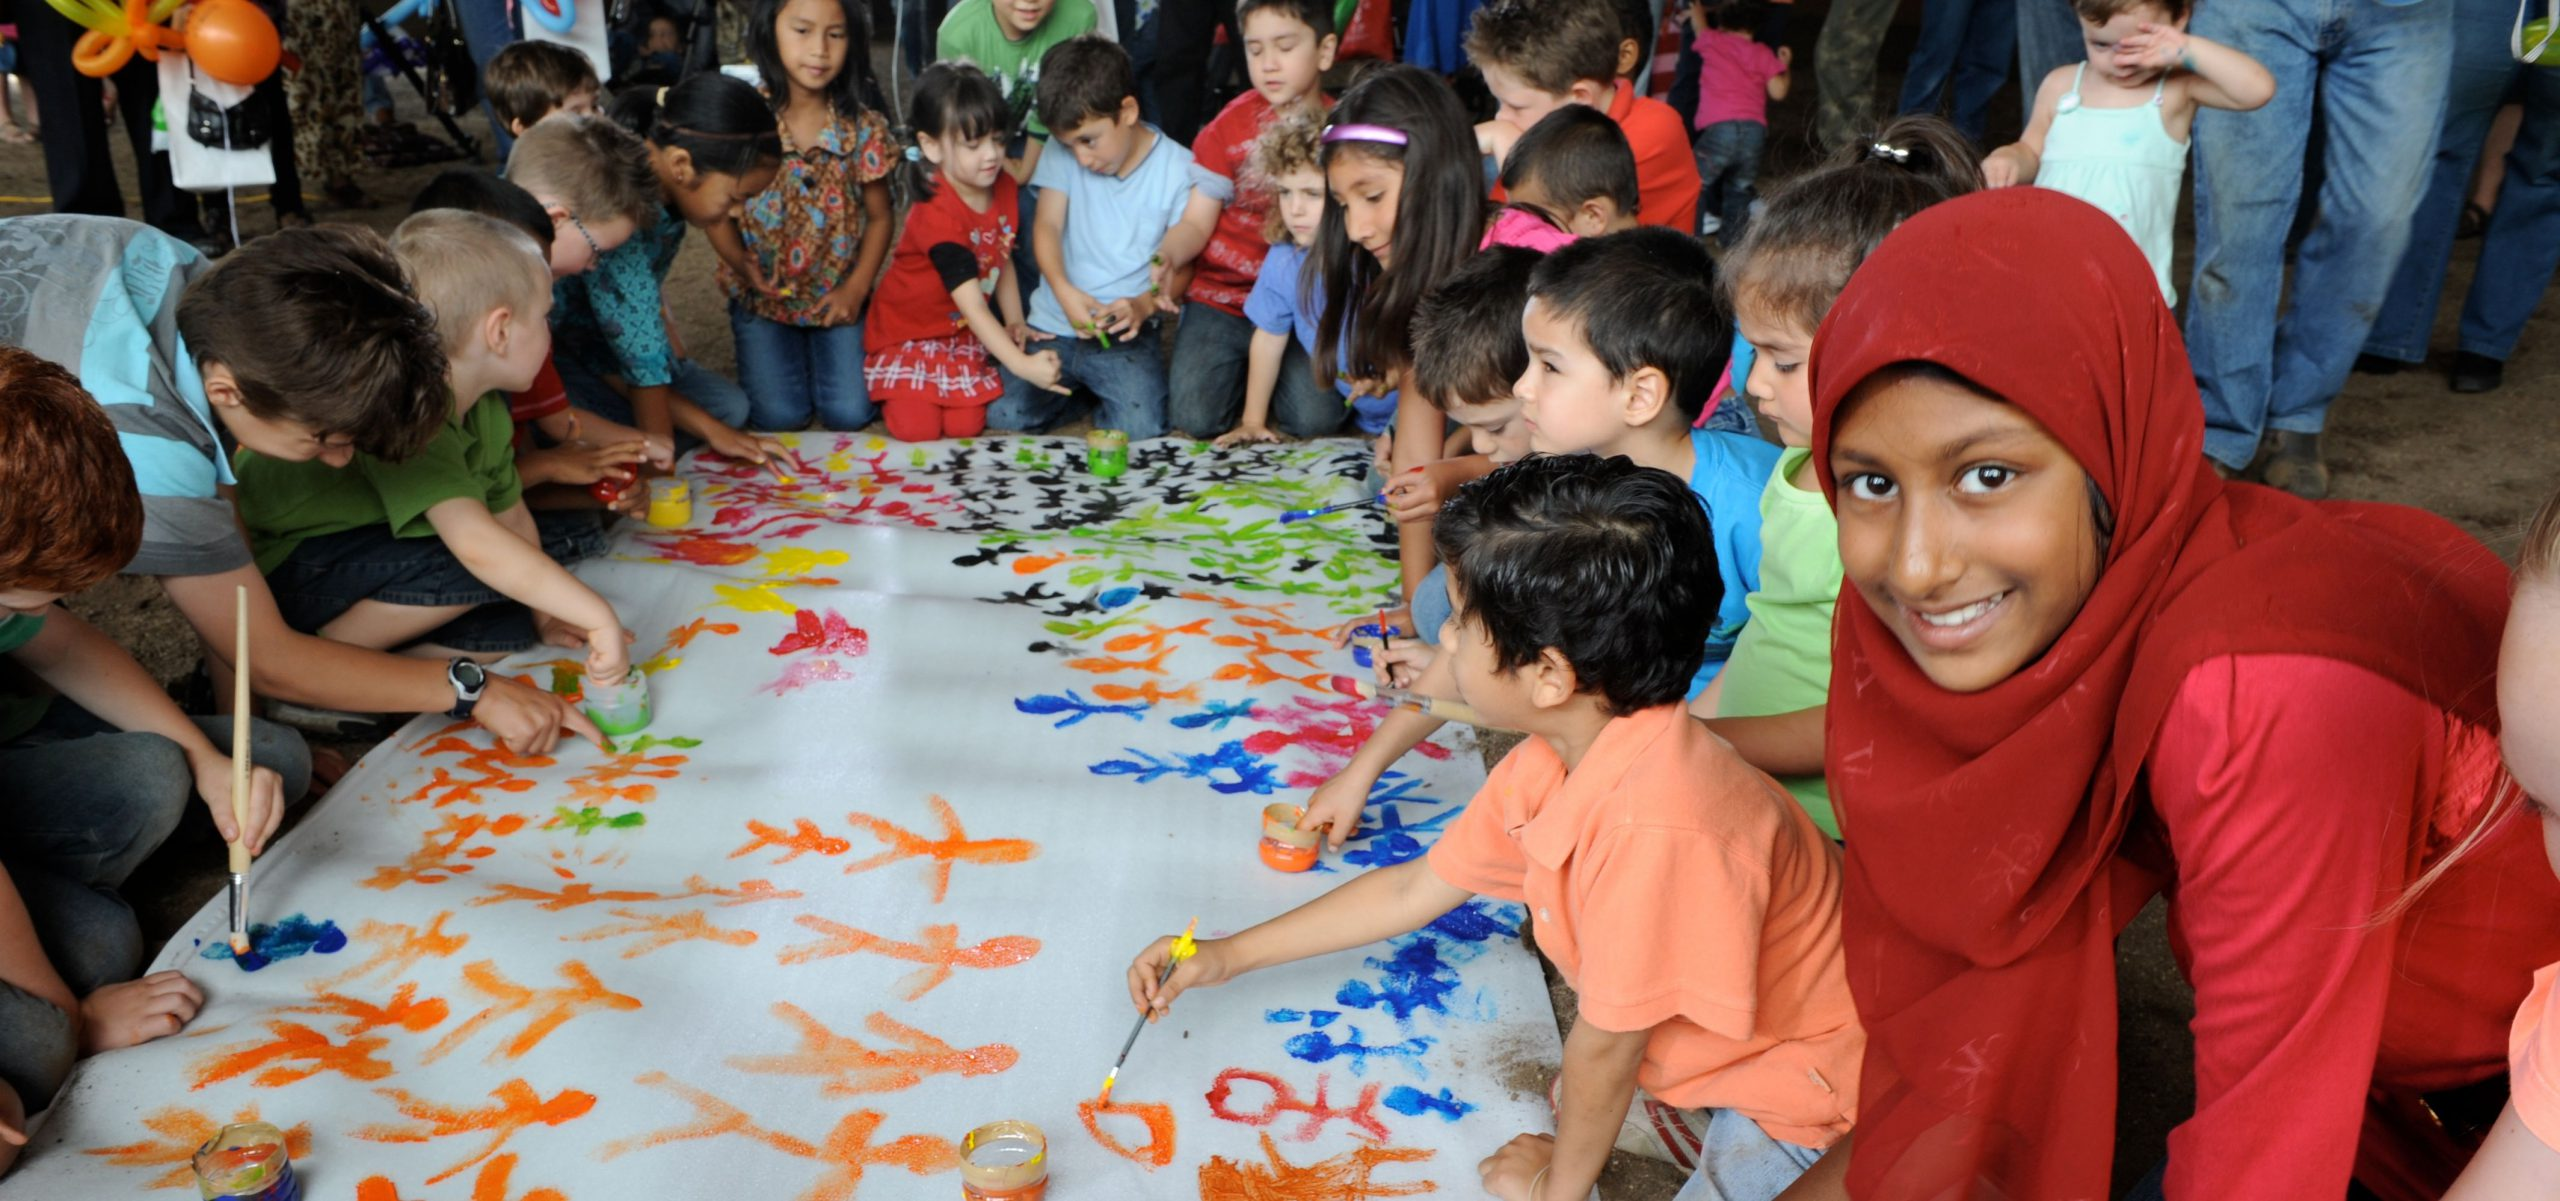 harmony day with children painting